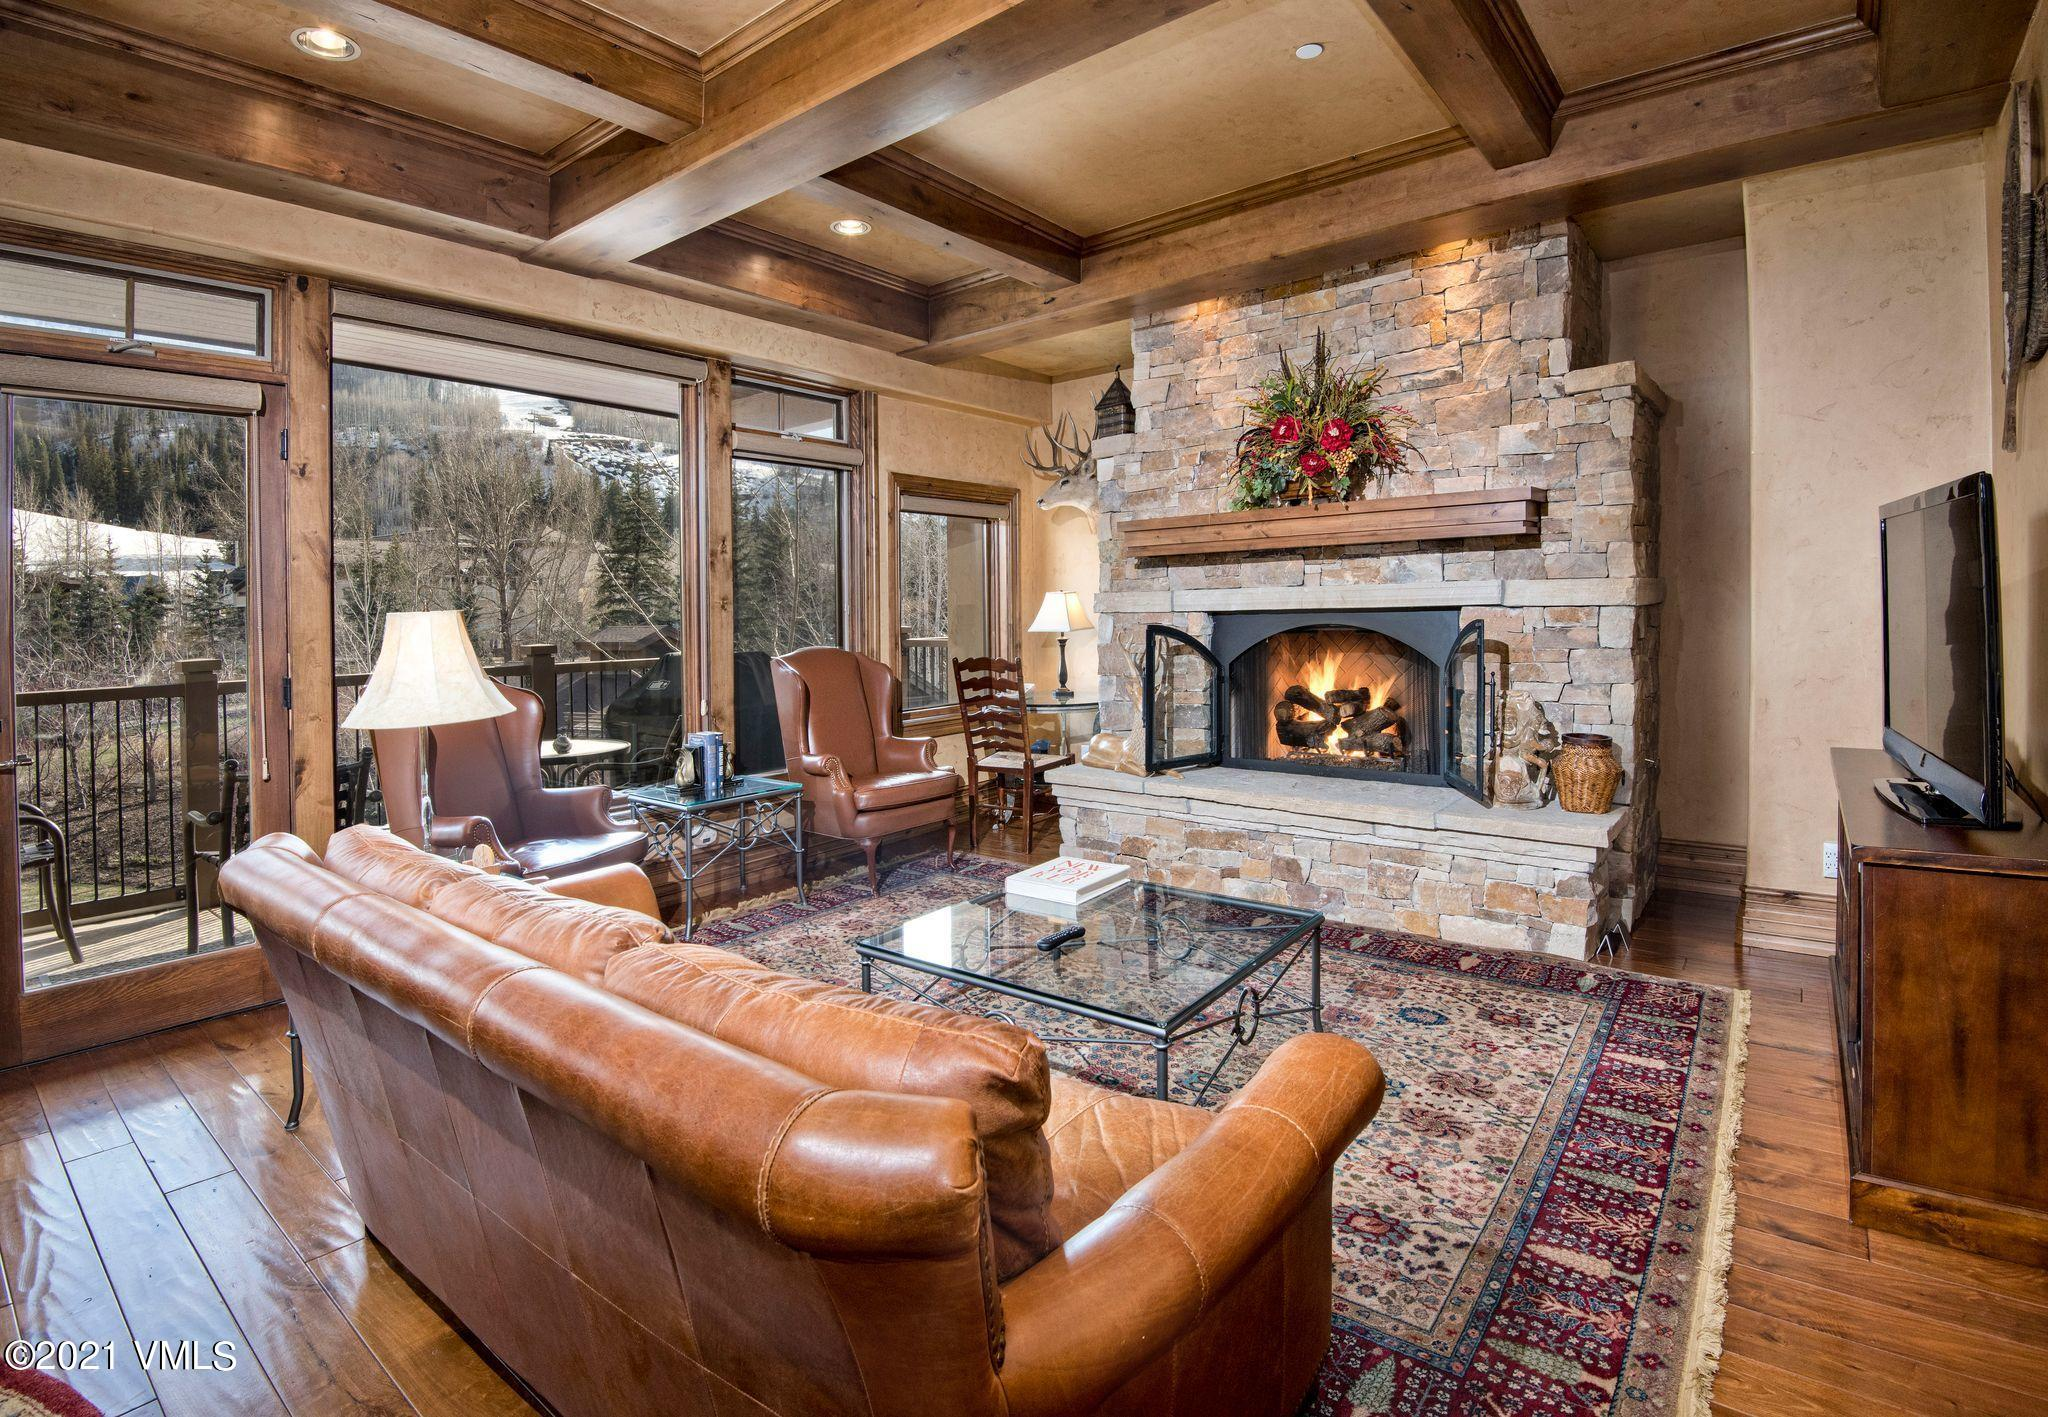 One of the 17 Penthouses built in 2008, this stunning residence will wow you the moment the elevator opens directly into the living room. Unobstructed views of Golden Peak ski mountain and sounds of Gore Creek from the bedrooms create a true mountain experience from every room. Designer furnished with high ceilings, air conditioning and comfortable floor plan. Included with the purchase is a deeded parking space with a private ski locker  steps from the residence. Everything is at your fingertips from the ski lift and Children's Ski School to dining and shopping in Vail Village. In the summer, enjoy concerts at Ford Amphitheater or take a stroll through Betty Ford Alpine Gardens, both a short walk away.  Manor Vail is an amenity-rich property offering 2 pools, 2 hot tubs, fitness room, spa and Fitz Restaurant & Bar. A desirable property for those who appreciate both convenience and privacy.There is no Right of First Refusal on the Penthouse units.